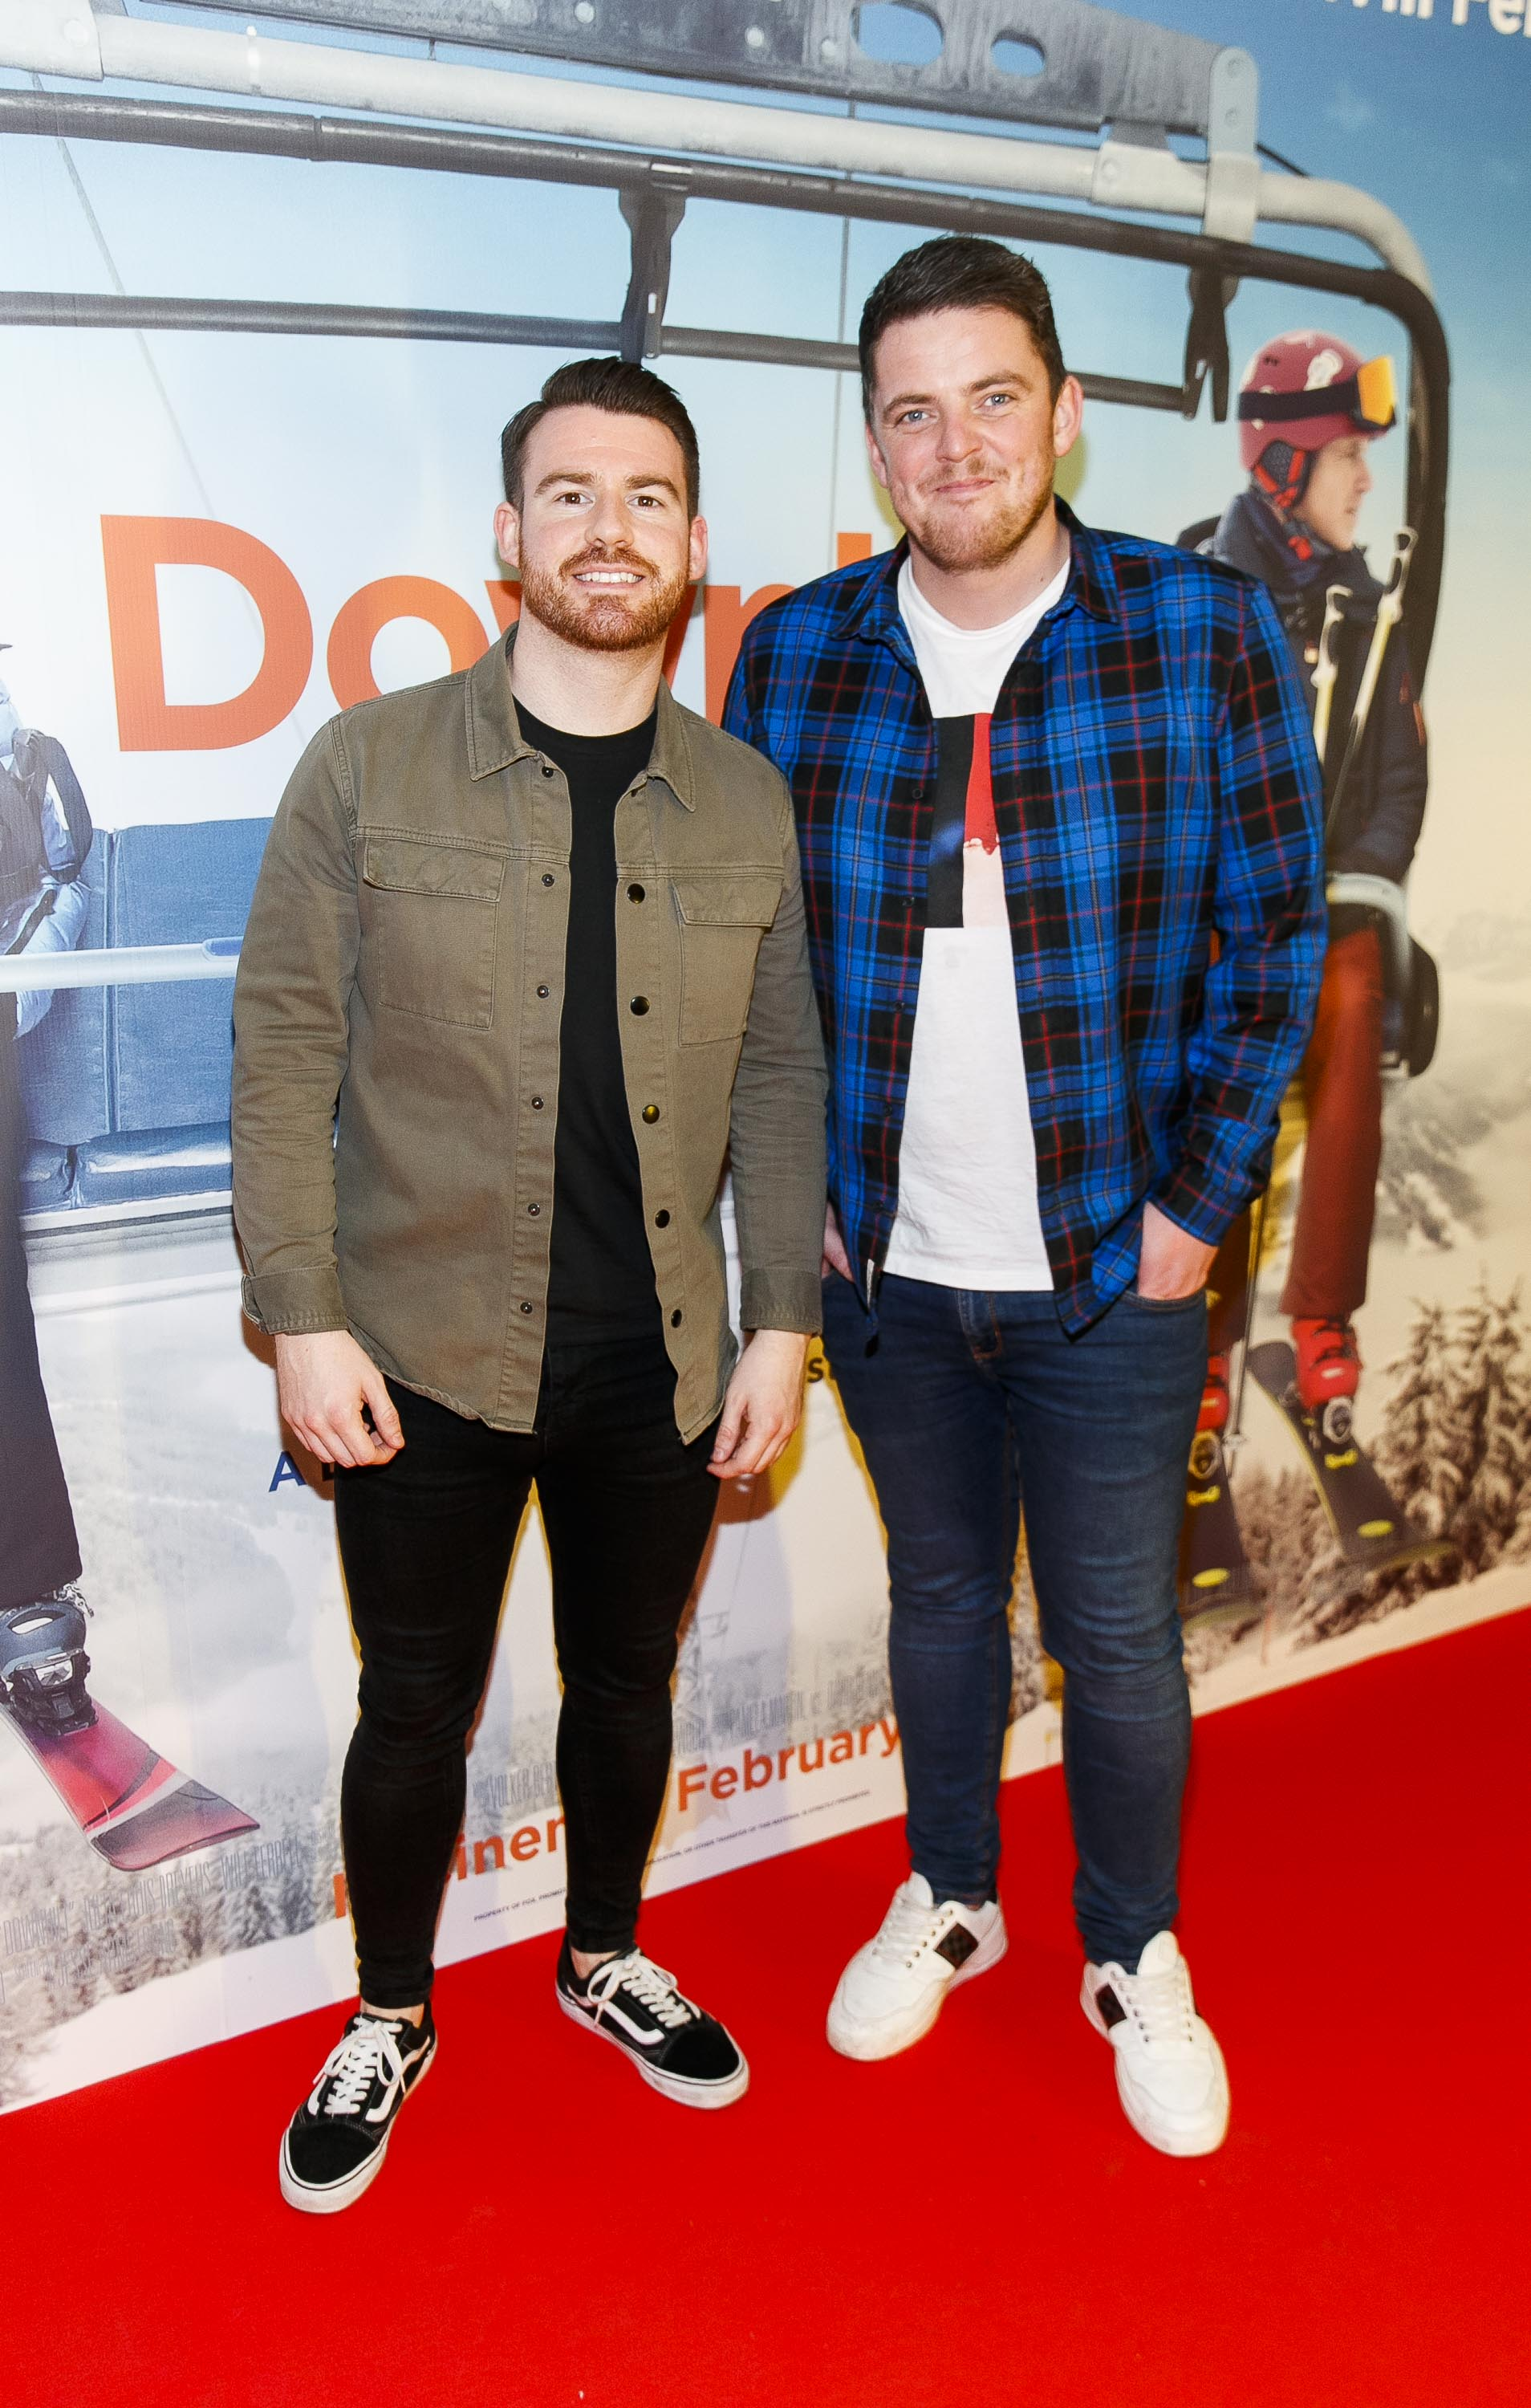 Brian Fitzmorris and Will O'Brien pictured at a special preview screening of Downhill at the Light House Cinema, Dublin. Picture: Andres Poveda.